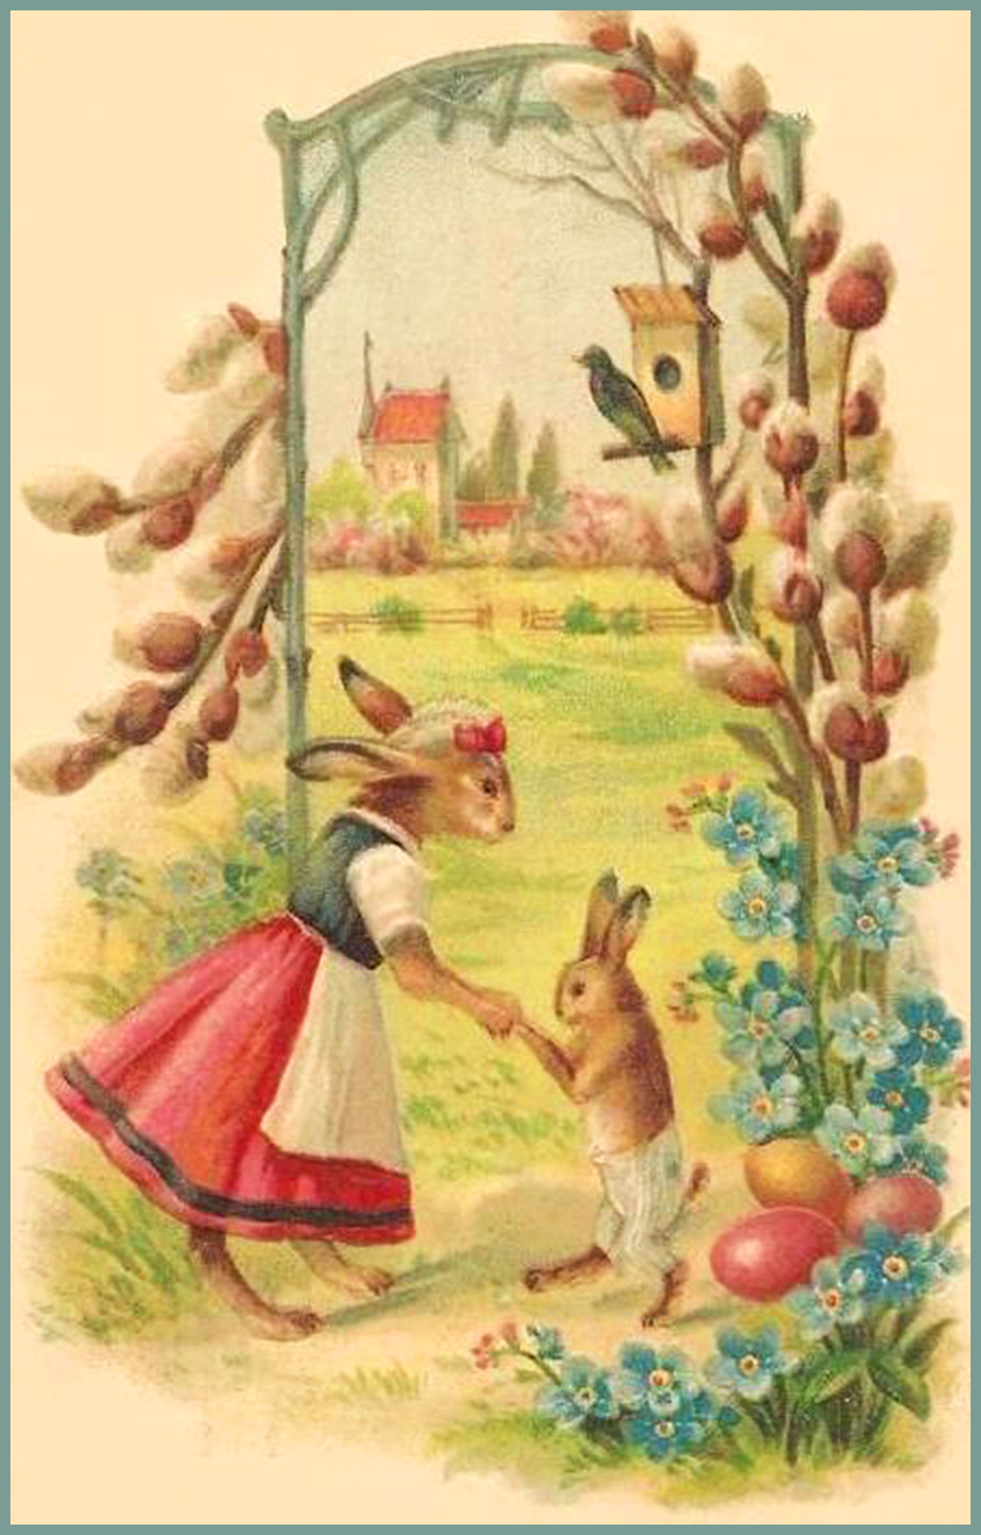 Free Easter card in cute vintage style with two bunnies.